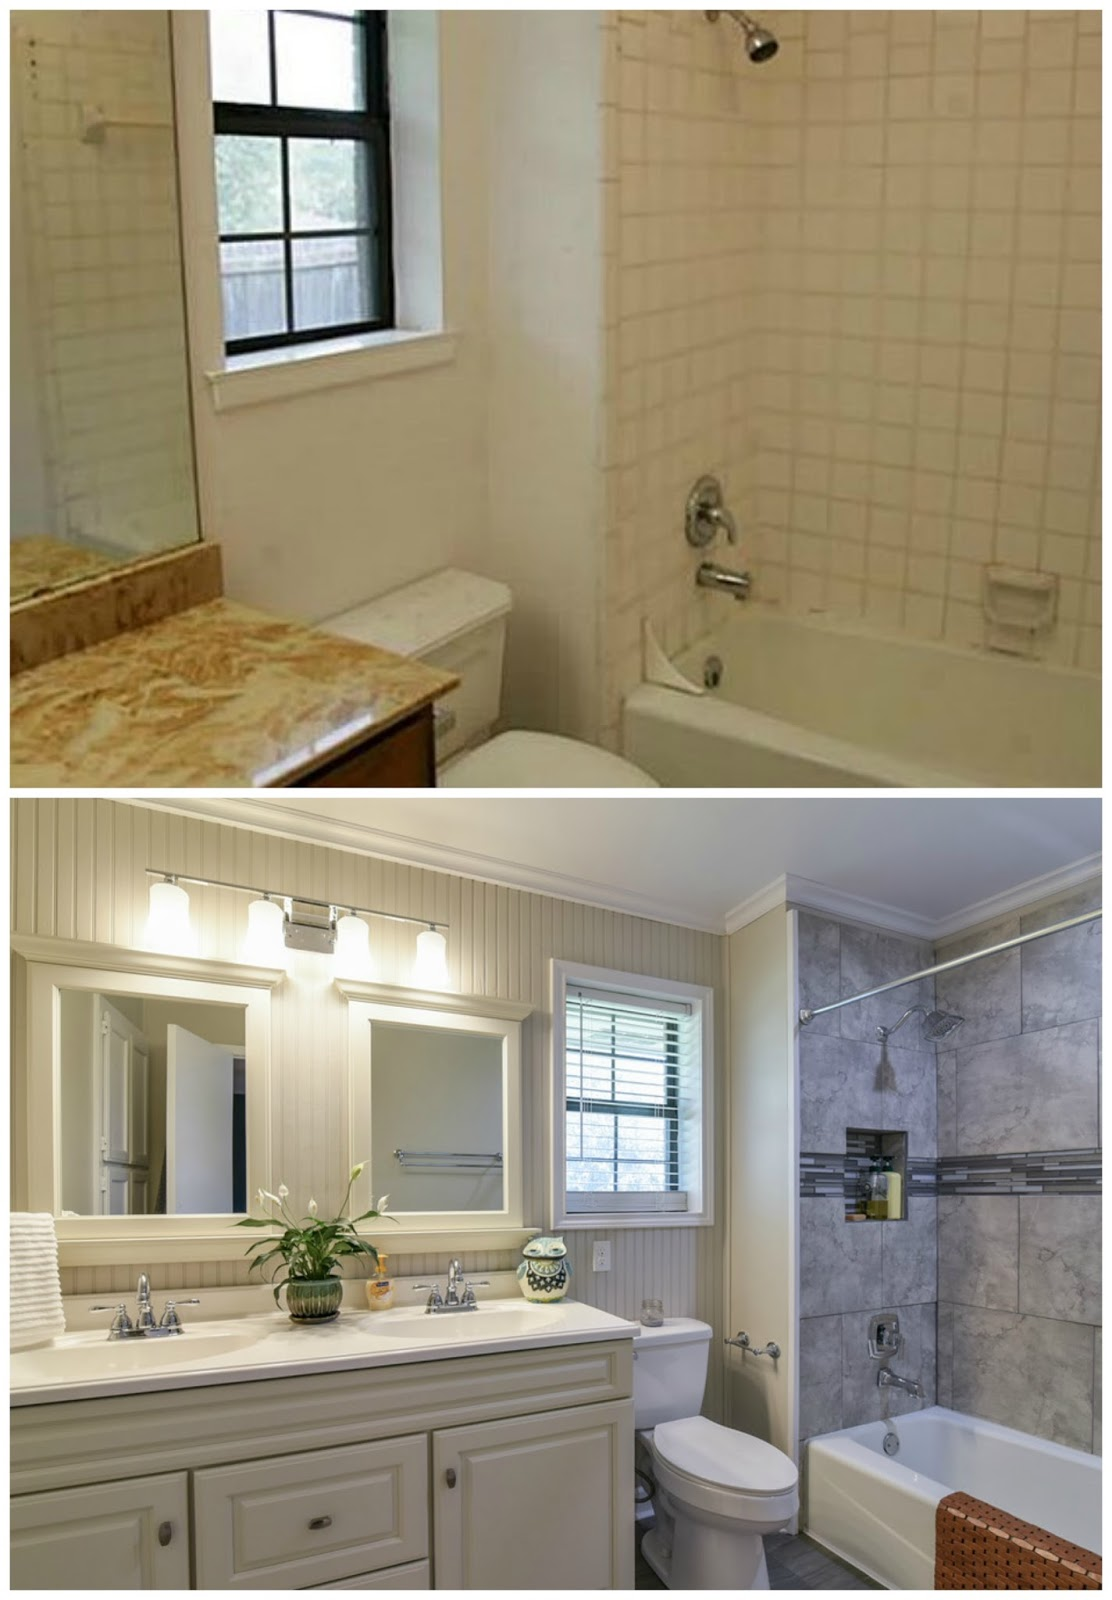 Marvelous Our new house has two very small bathrooms so I am seriously missing this space We can ut even shower in one of our bathrooms because of the way the